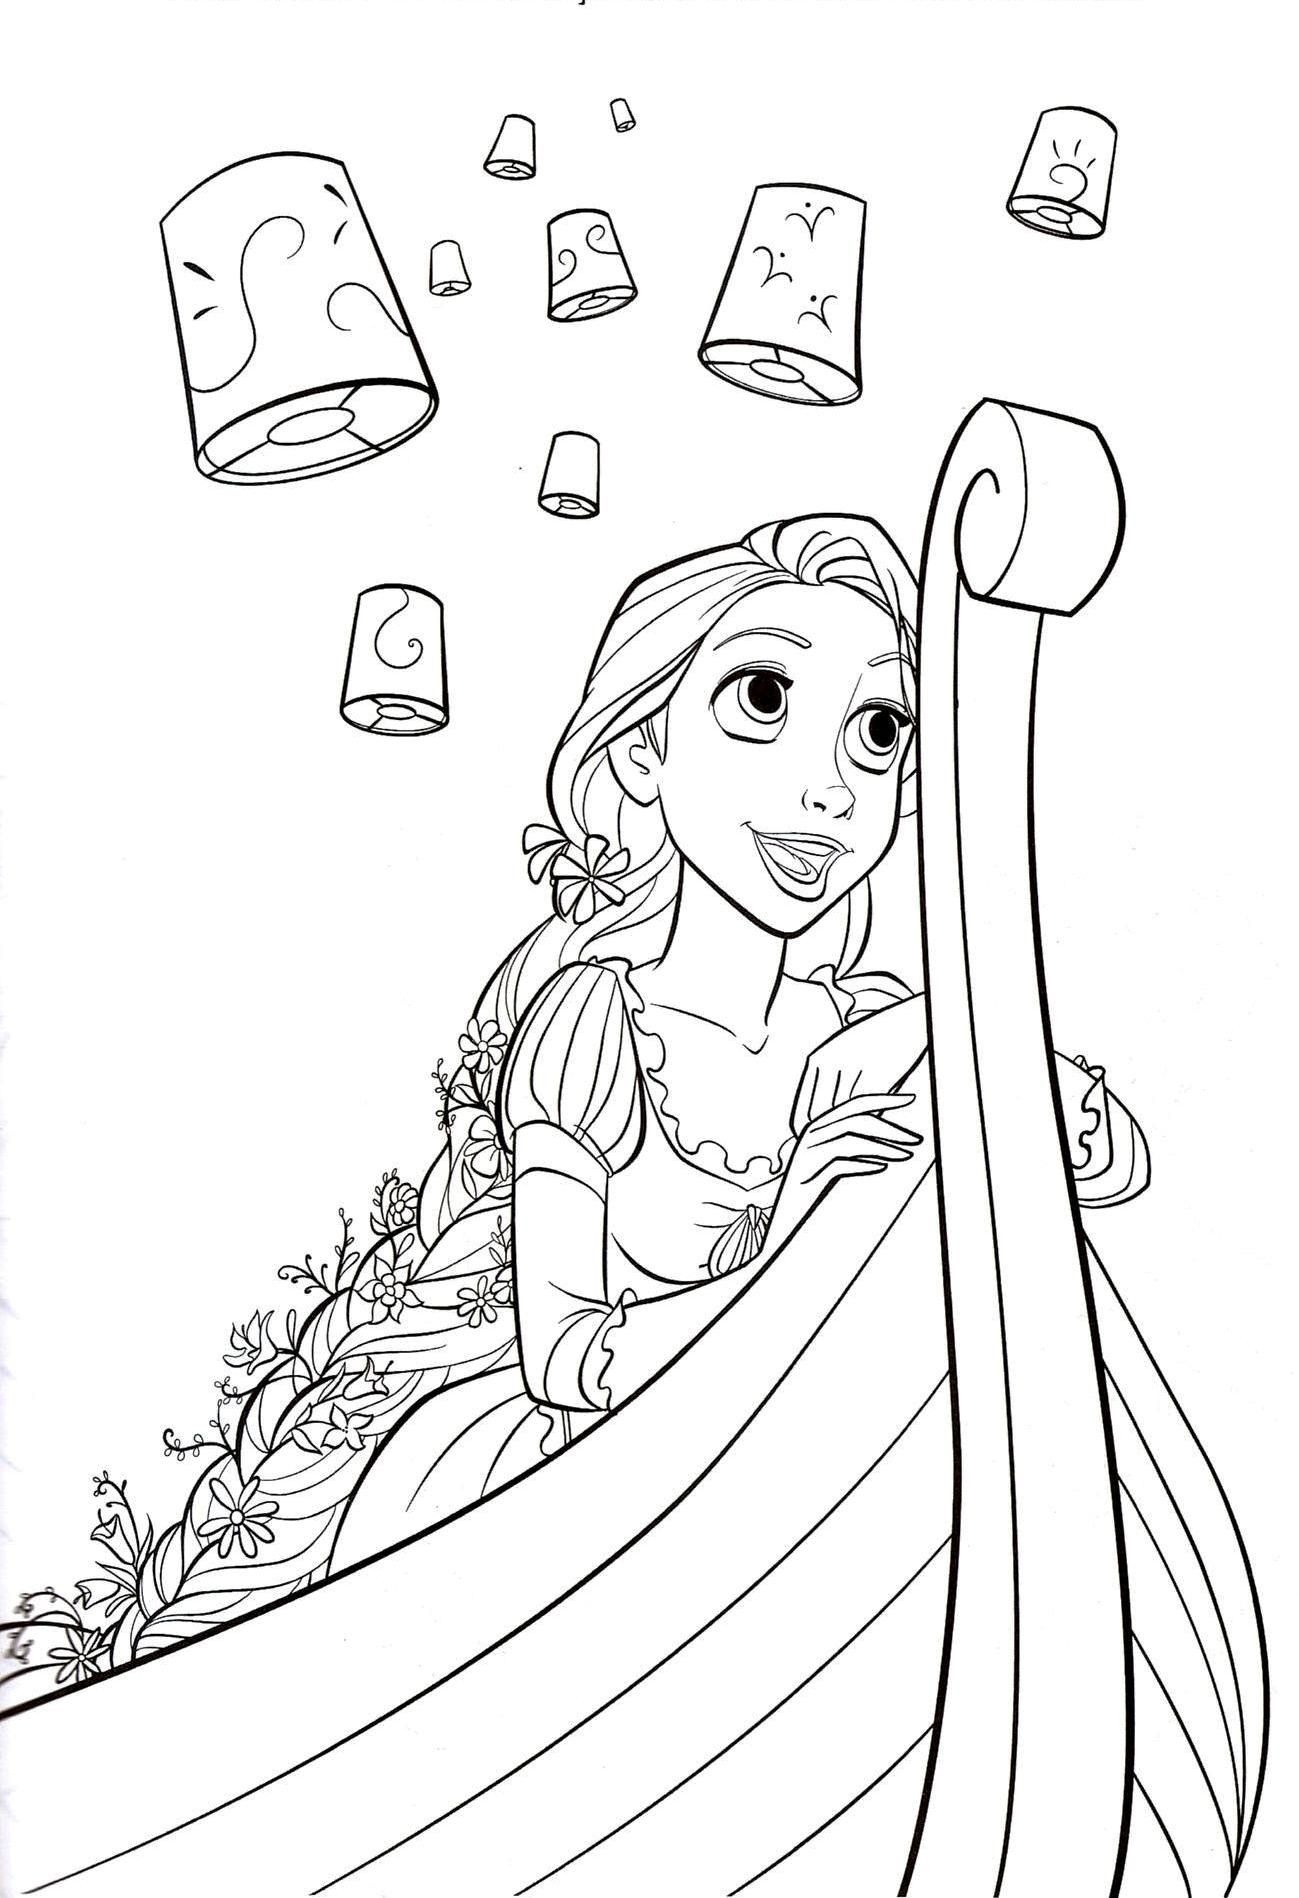 Flynn Rider And Rapunzel Coloring Page